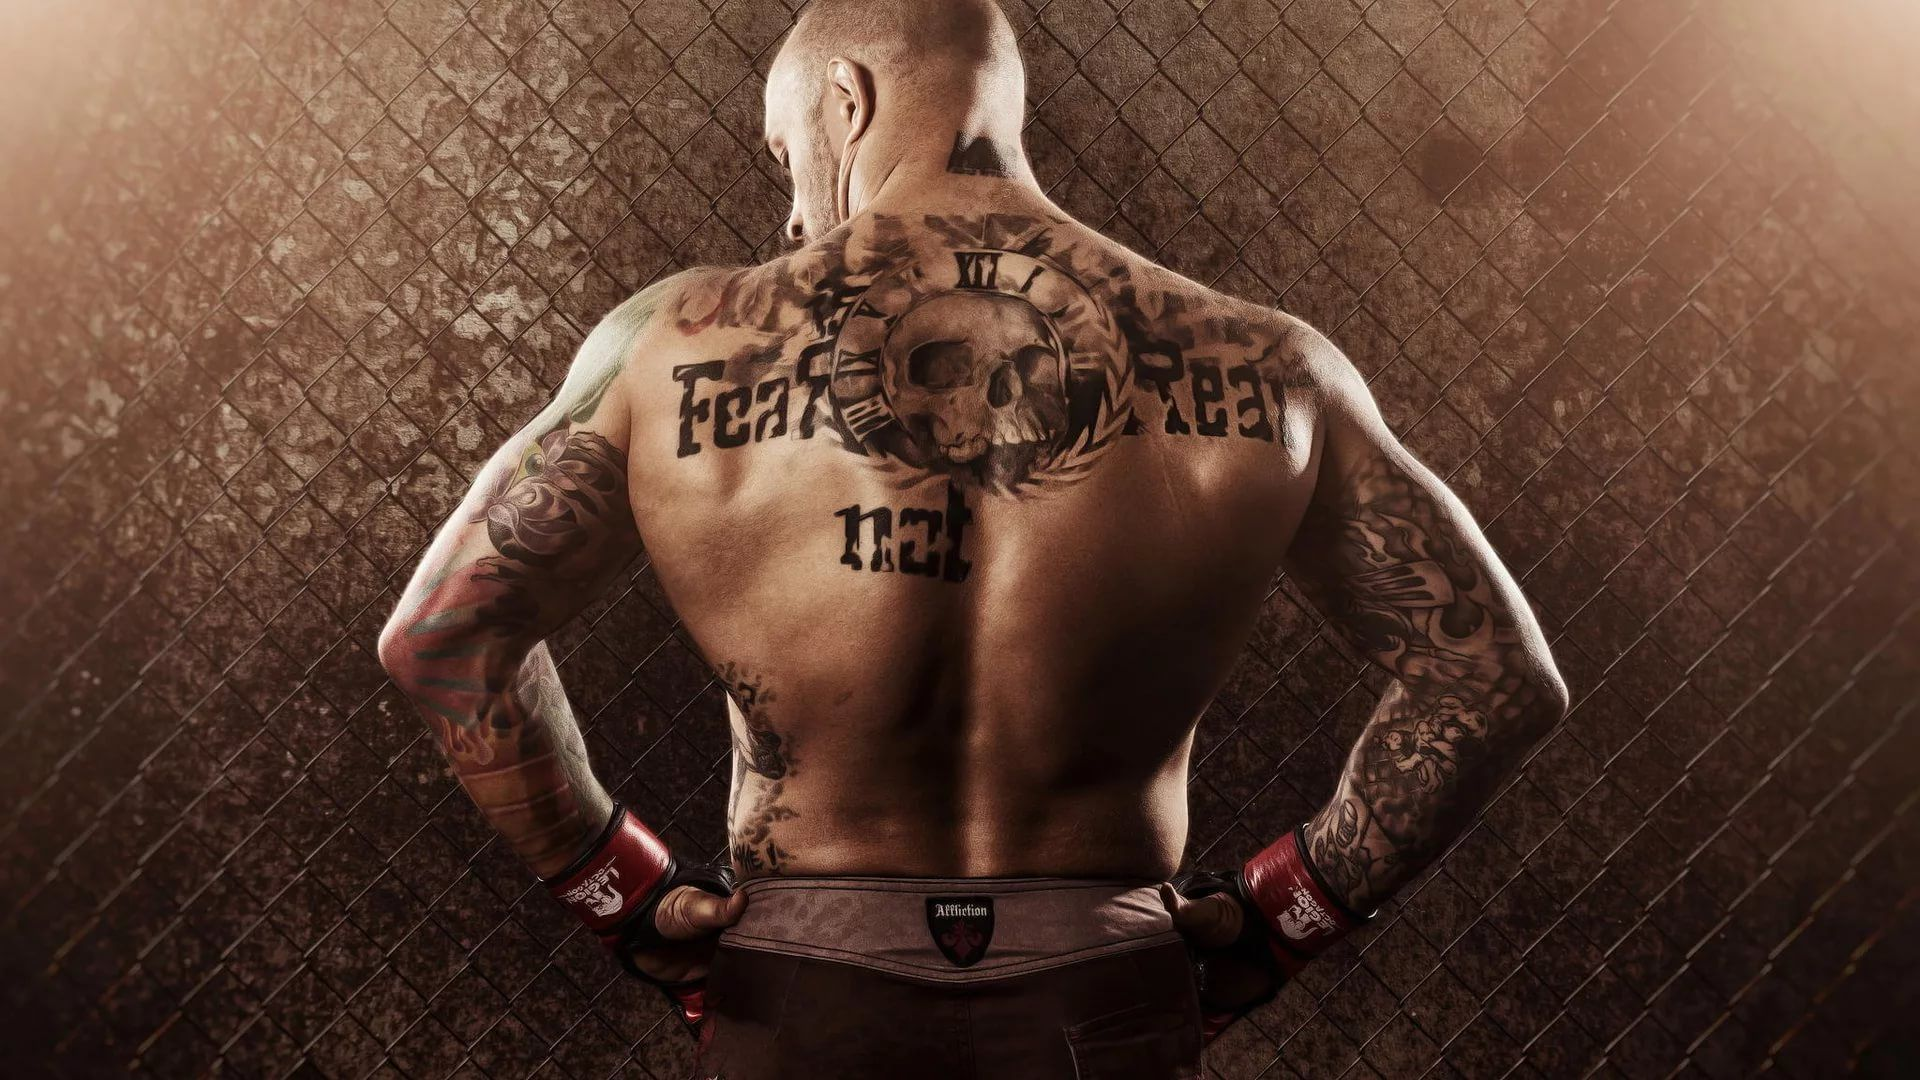 MMA download nice wallpaper